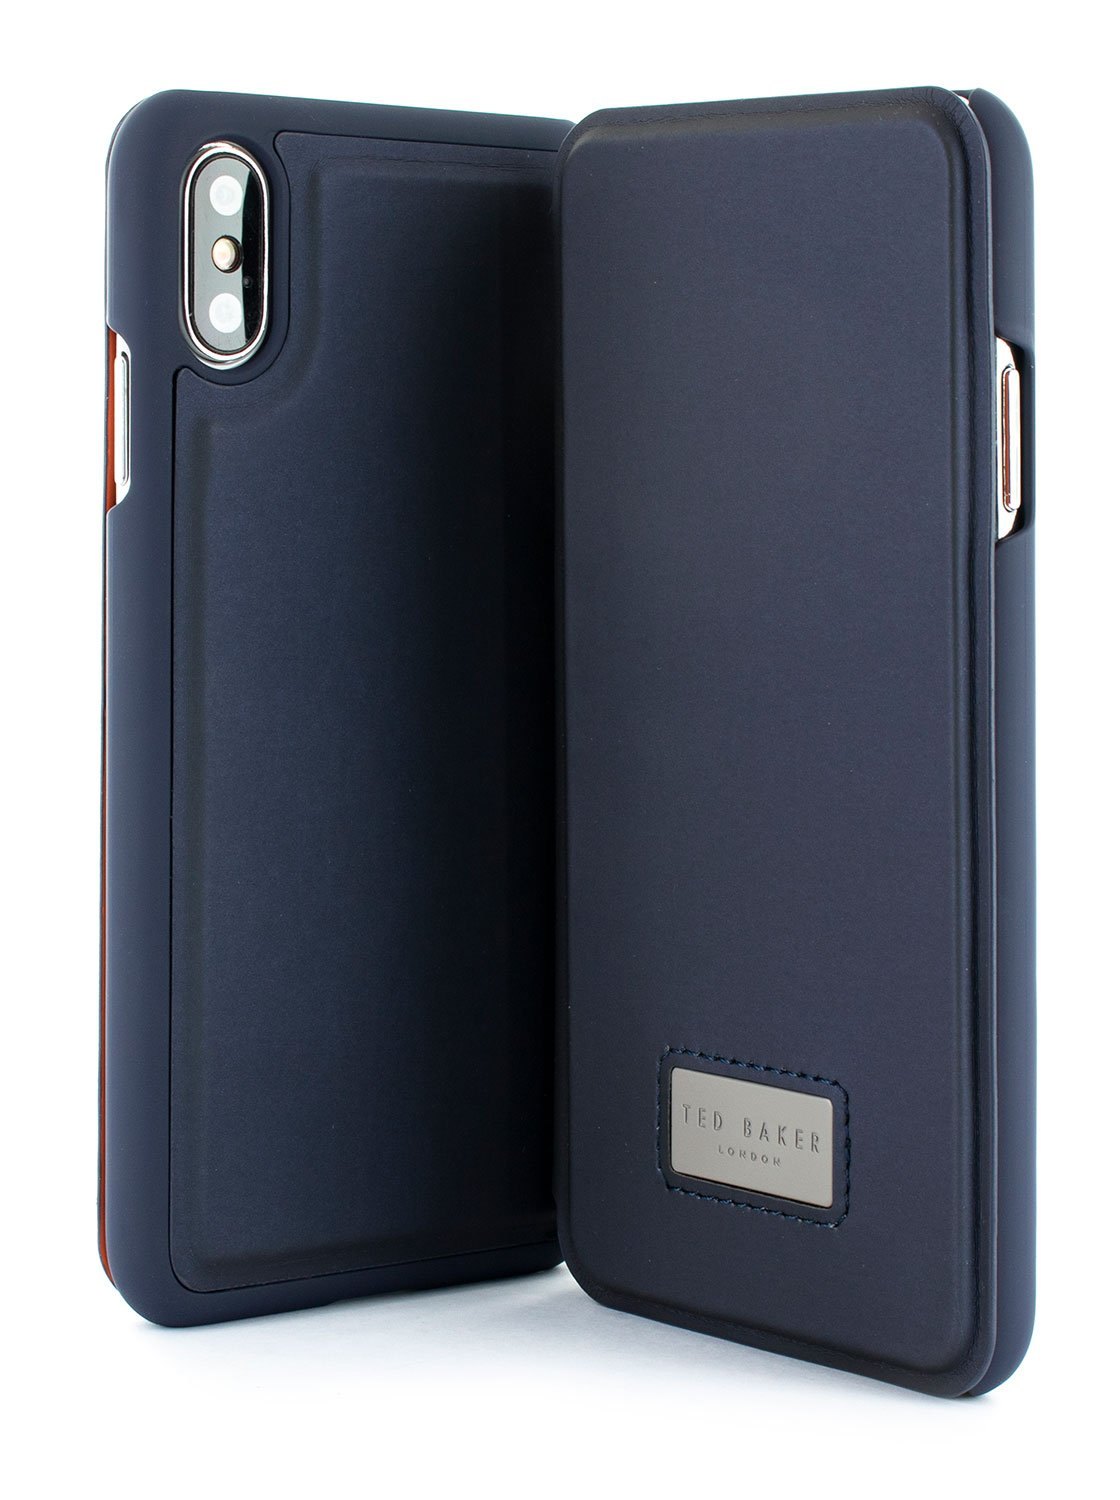 Front and back image of the Ted Baker Apple iPhone XS / X phone case in Navy Blue